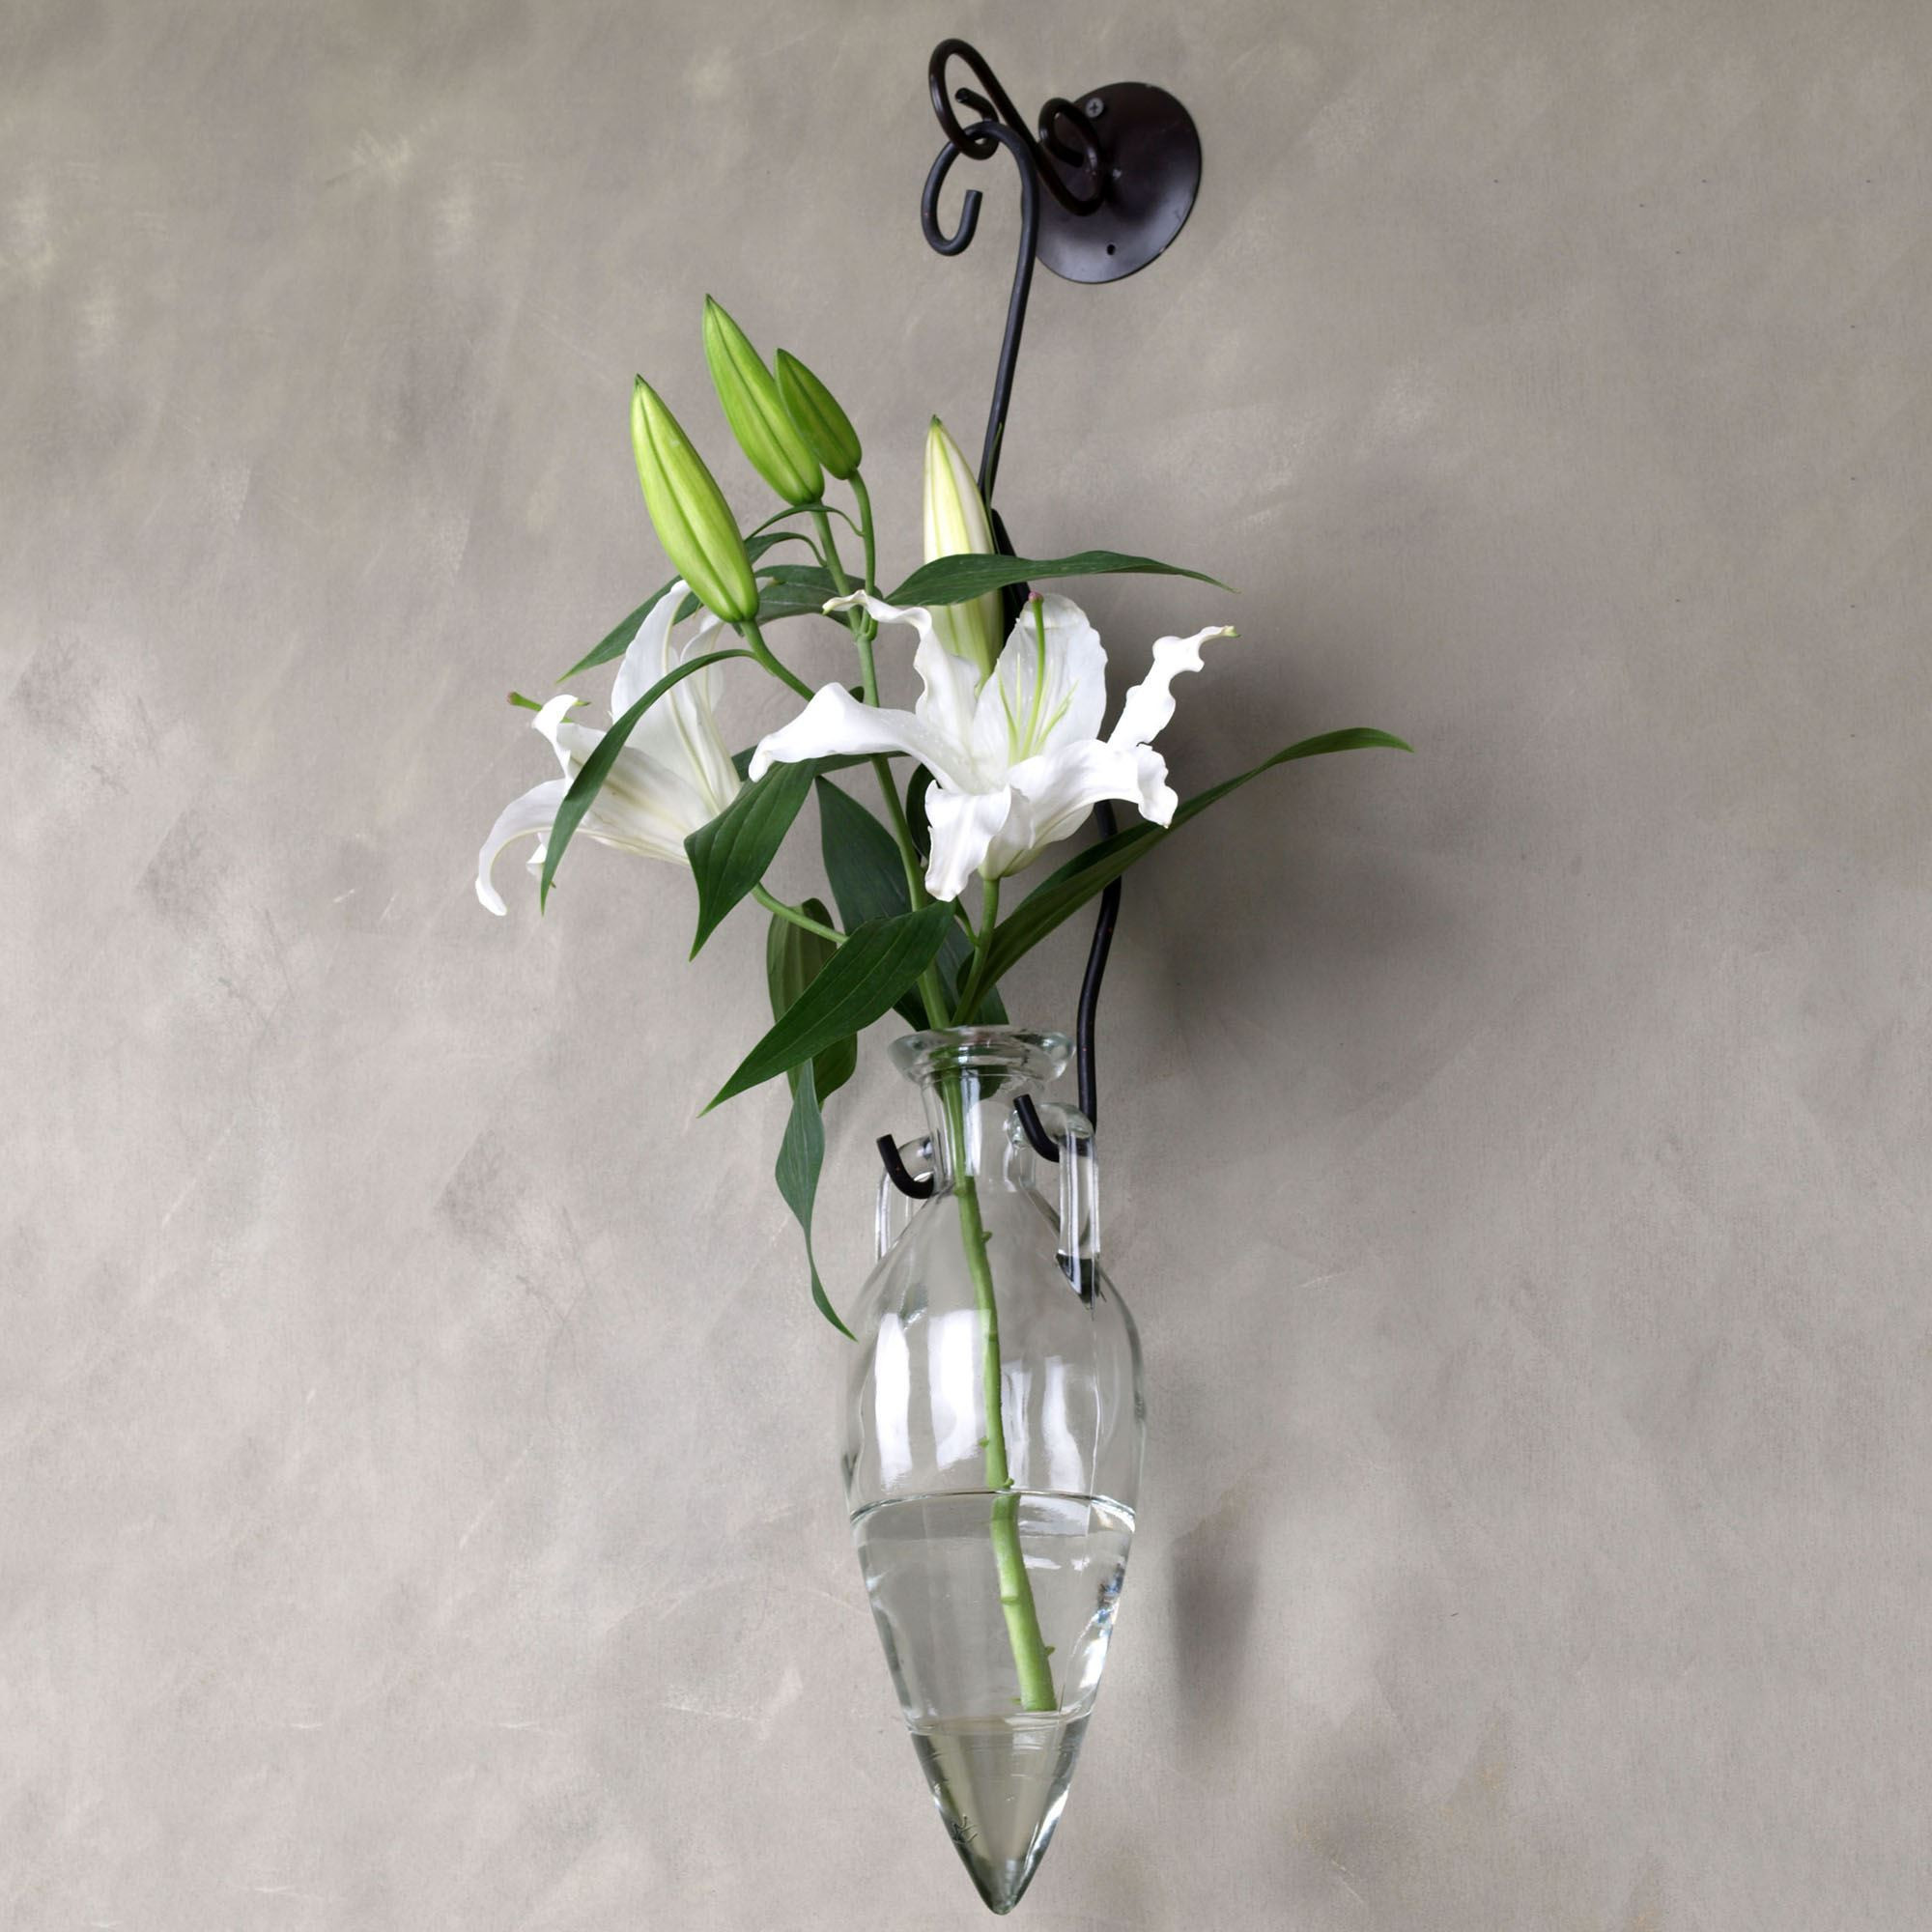 6x6 glass vase of hanging glass vases wall images set of 4 empty glass wall bubble for hanging glass vases wall gallery h vases wall hanging flower vase newspaper i 0d scheme wall